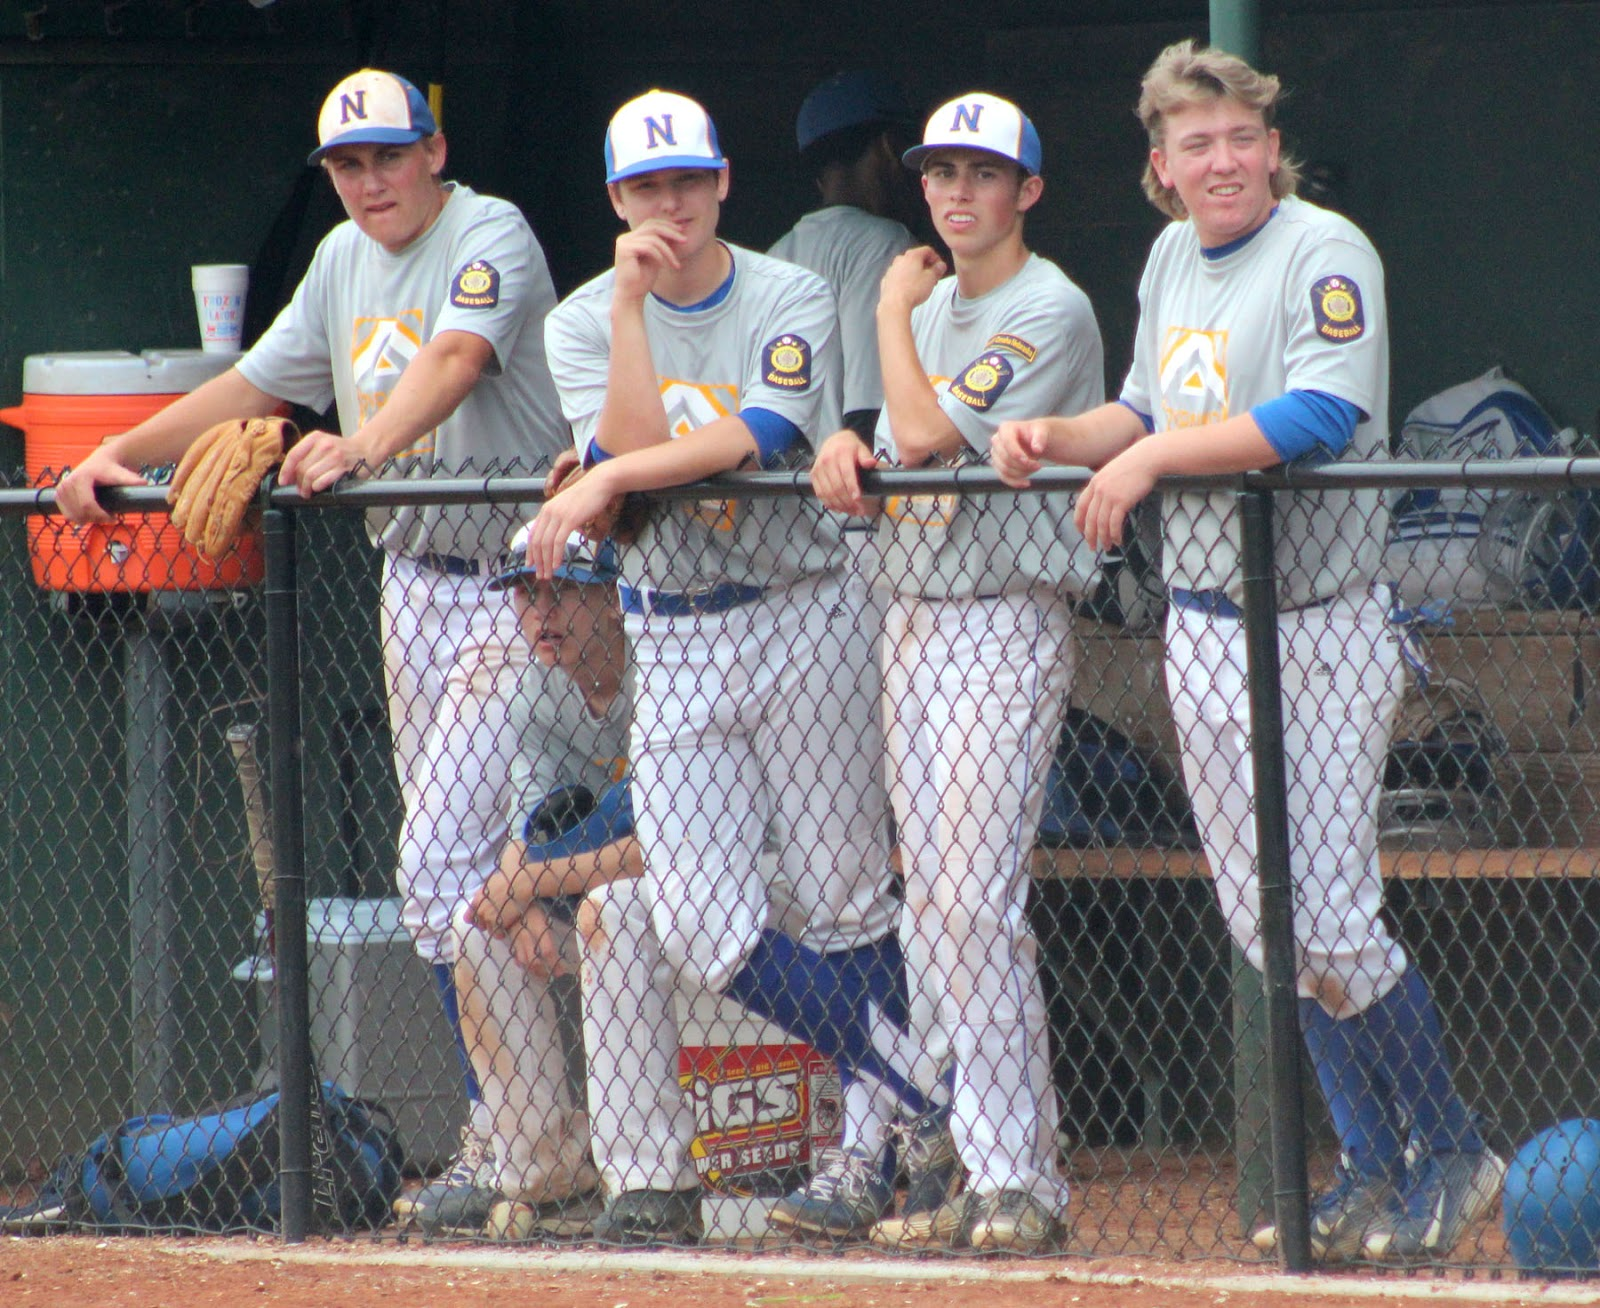 Congratulations To The Pyramid Roofing Vikings Four An Outstanding Showing  At The Blue Springs Woodbat Tournament, Posting A 3 1 Record And On The  Outskirts ...